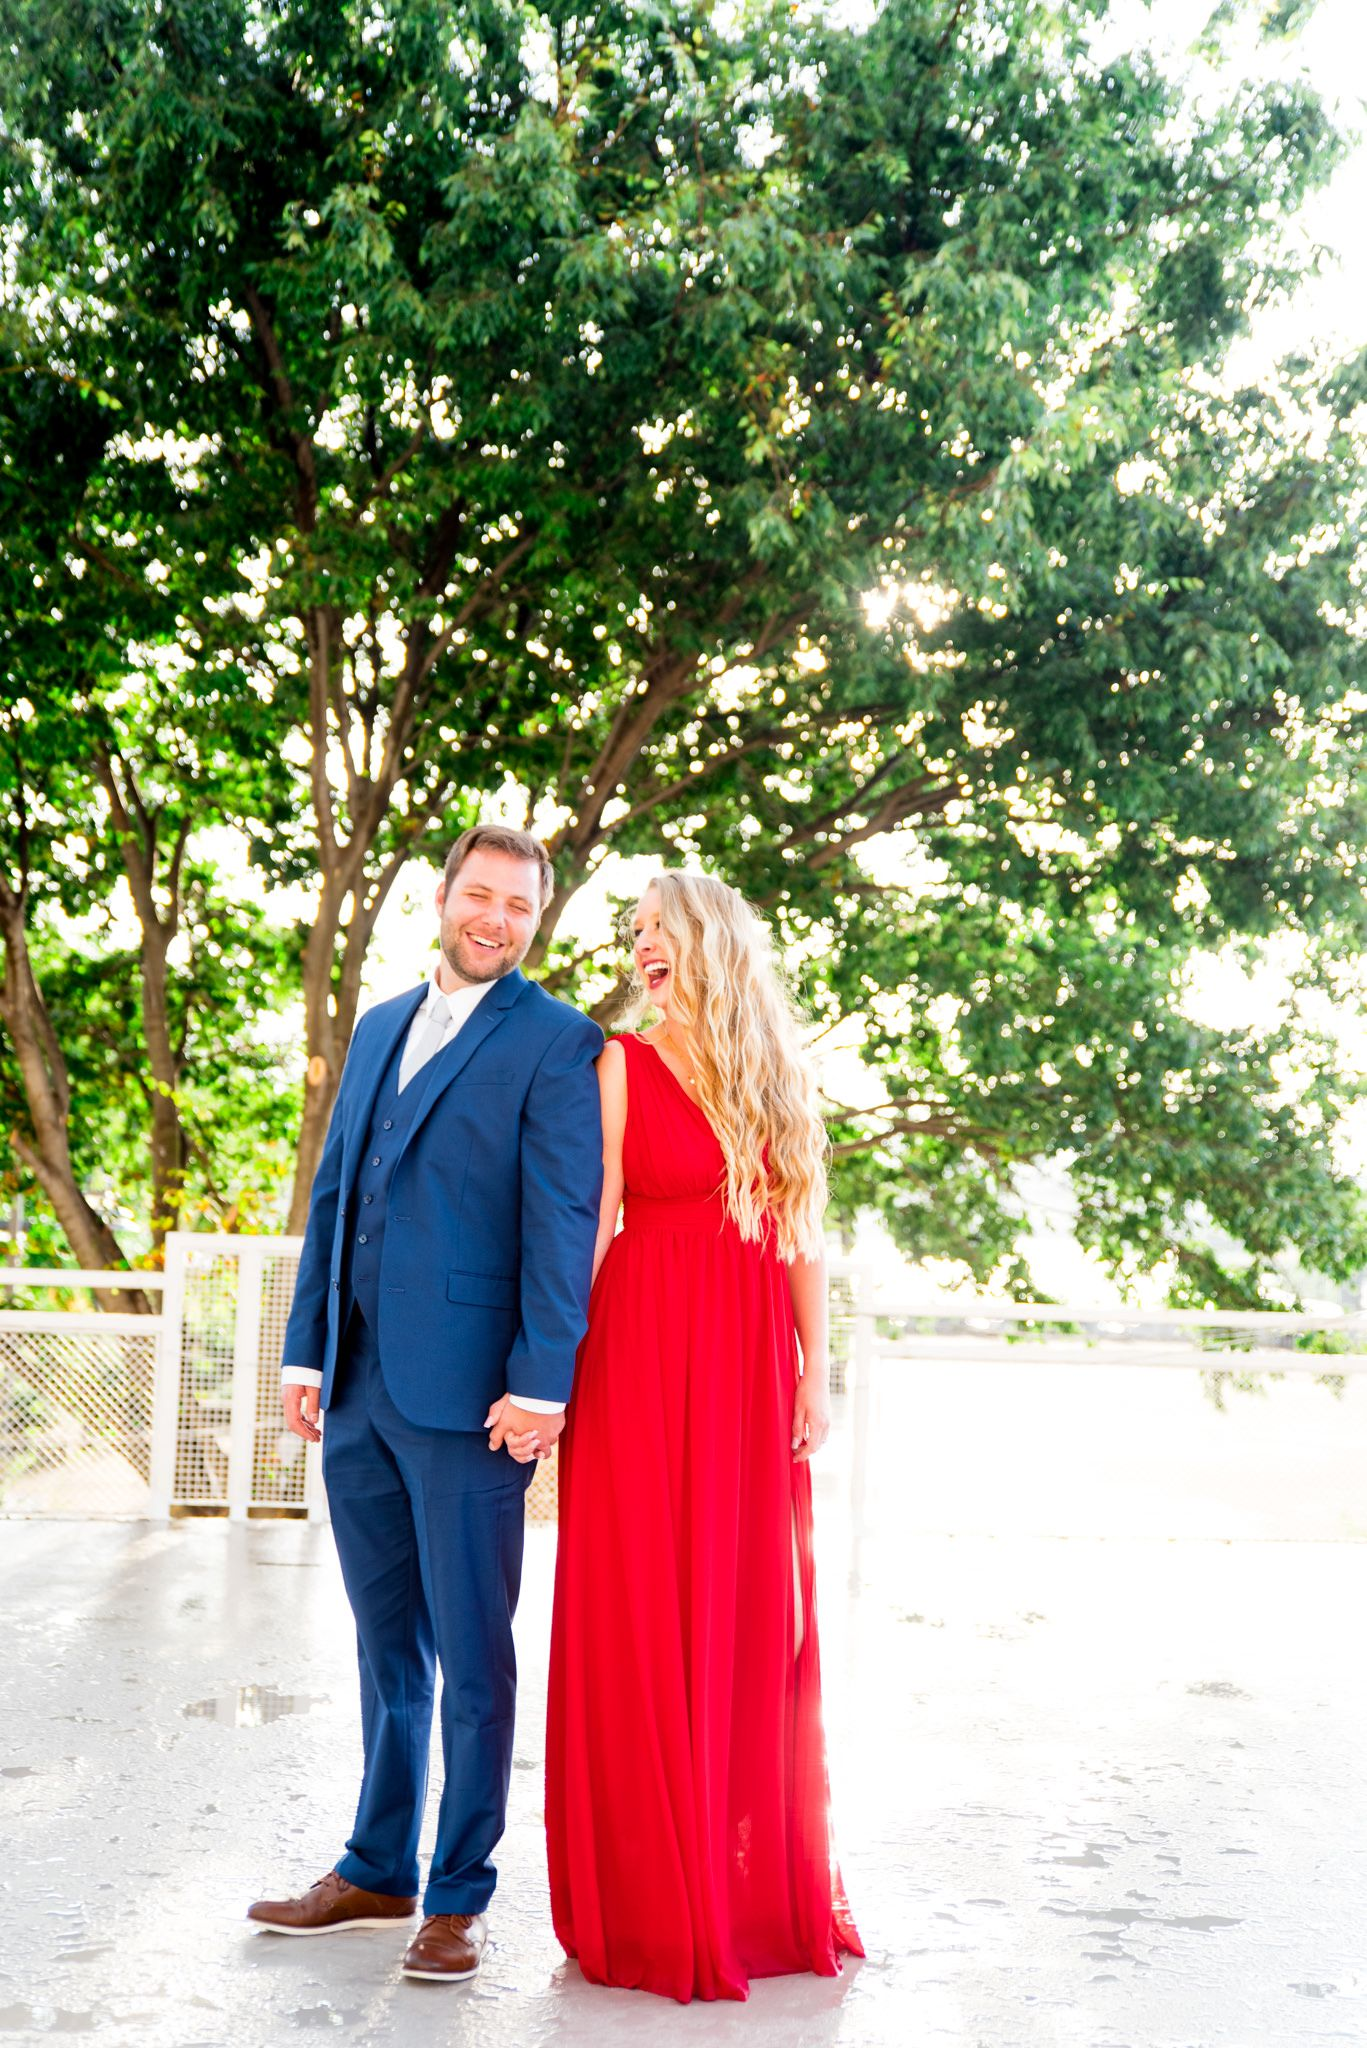 blonde woman in red dress and man in navy suit look at each other laughing in front of big tree